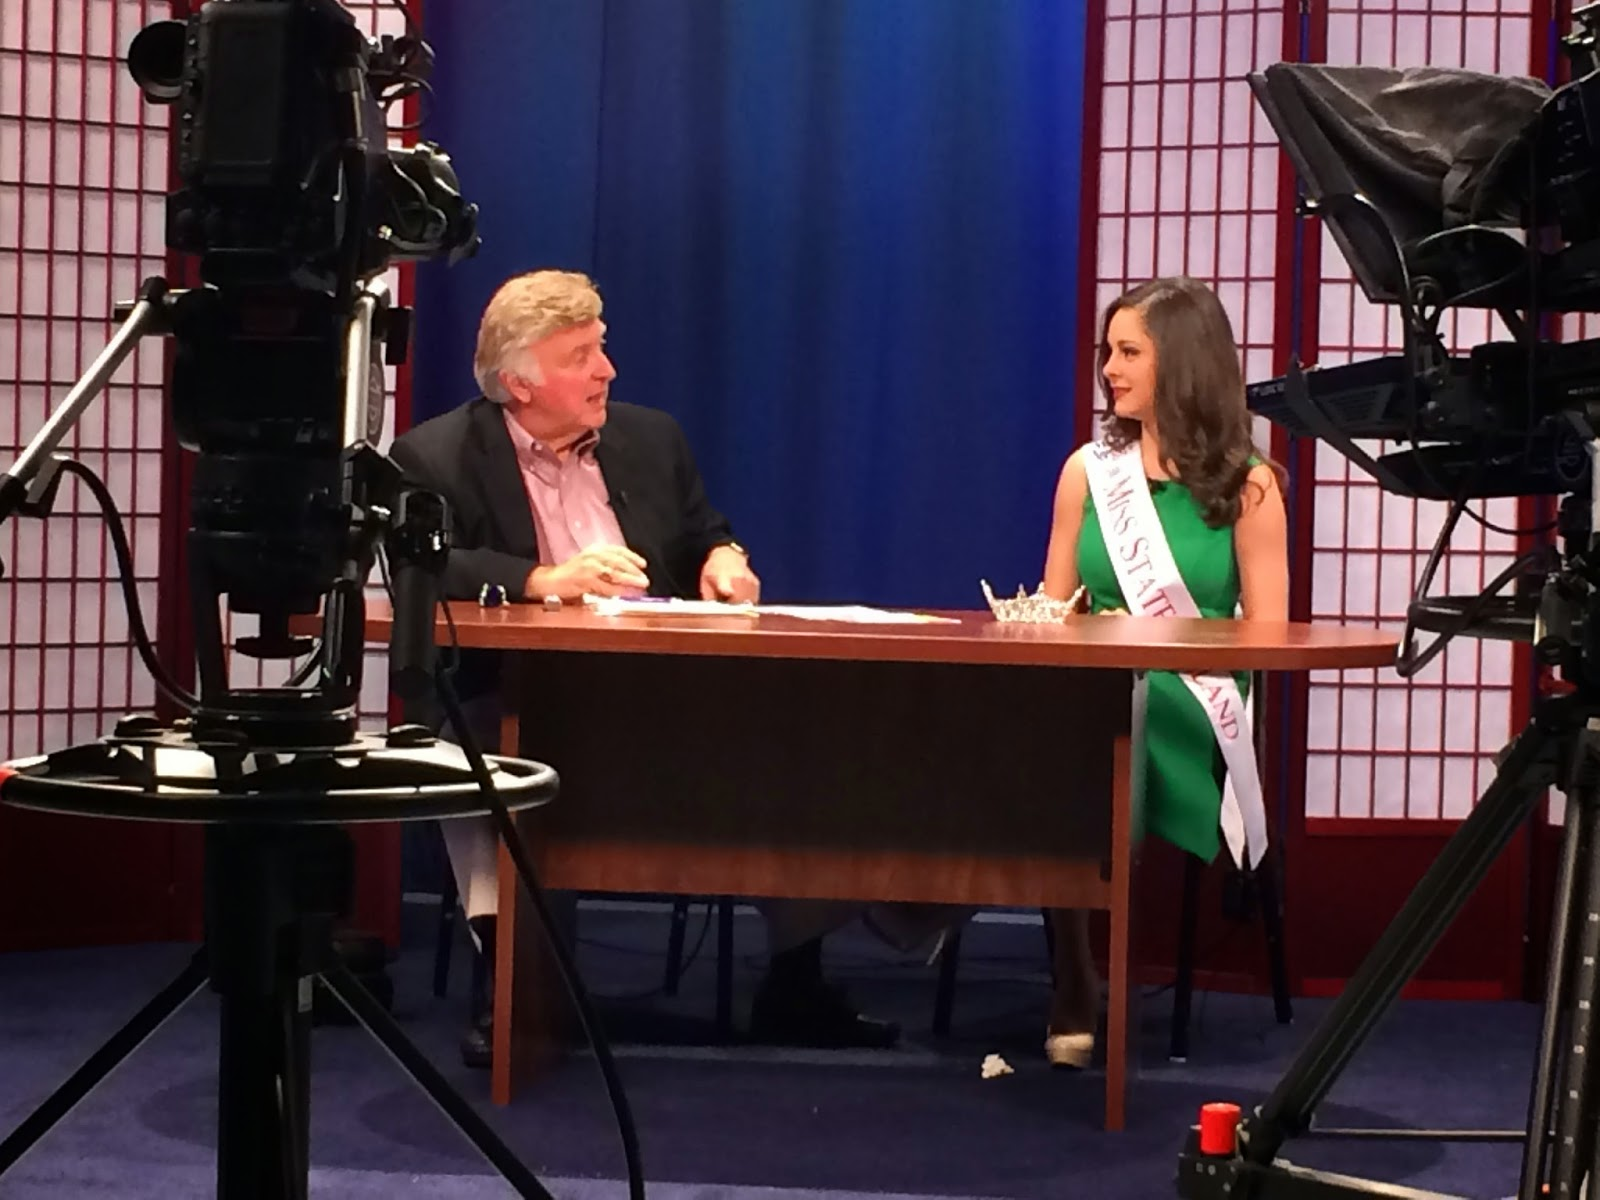 miss staten island ctv interview al lambert thank you so much mr lambert for allowing me the chance to speak about what i love and thanks to vinnie for arranging it all i had a really great time